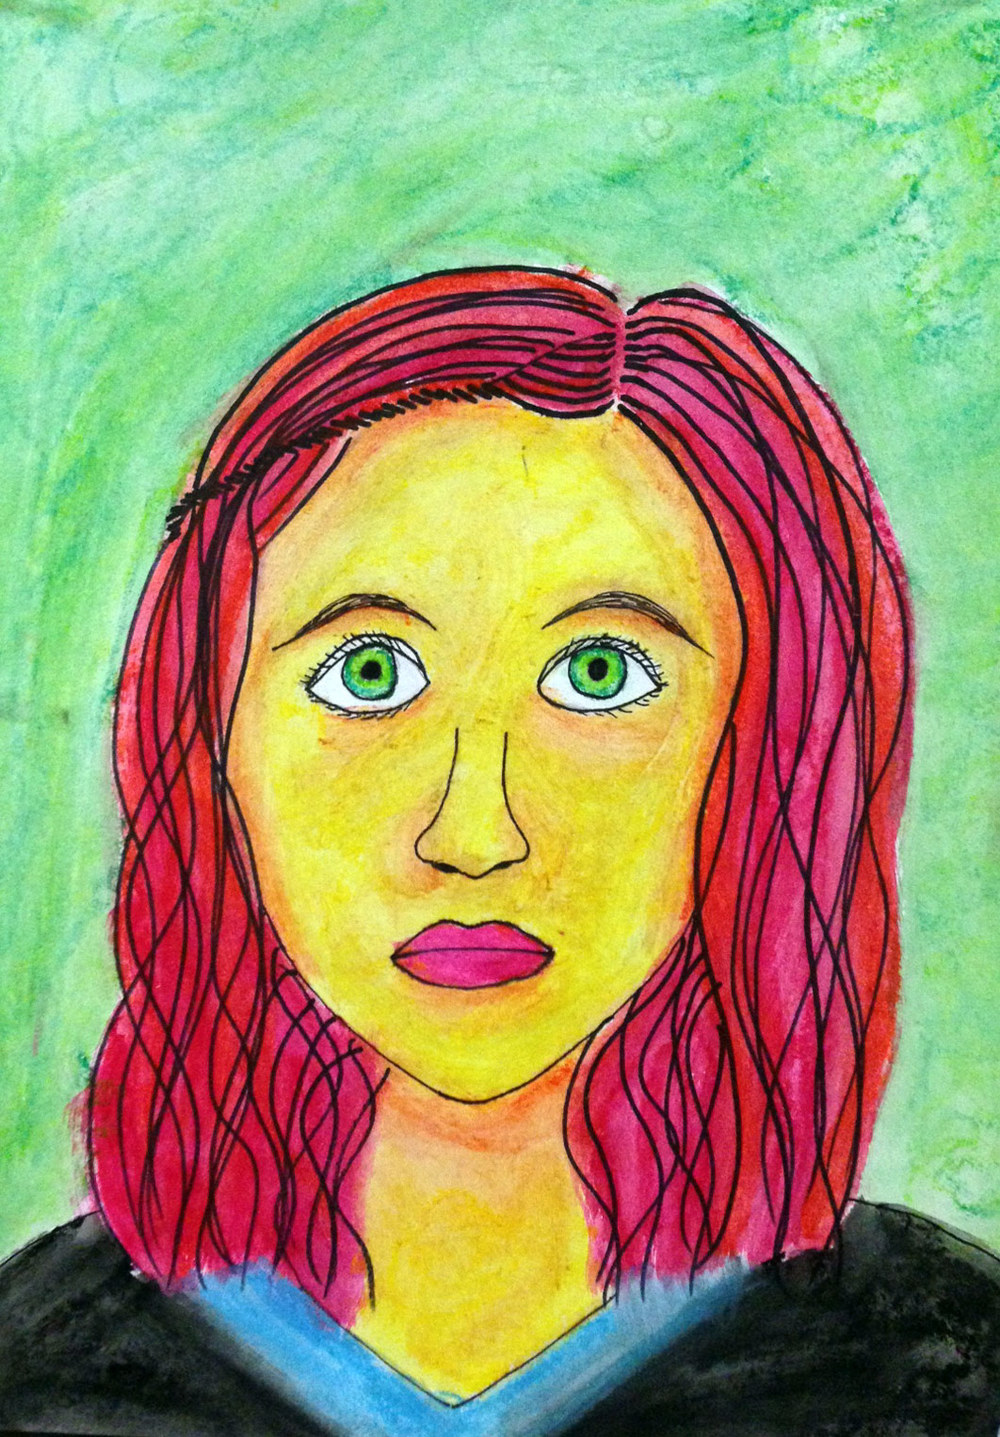 oil_pastel_portrait2.jpg